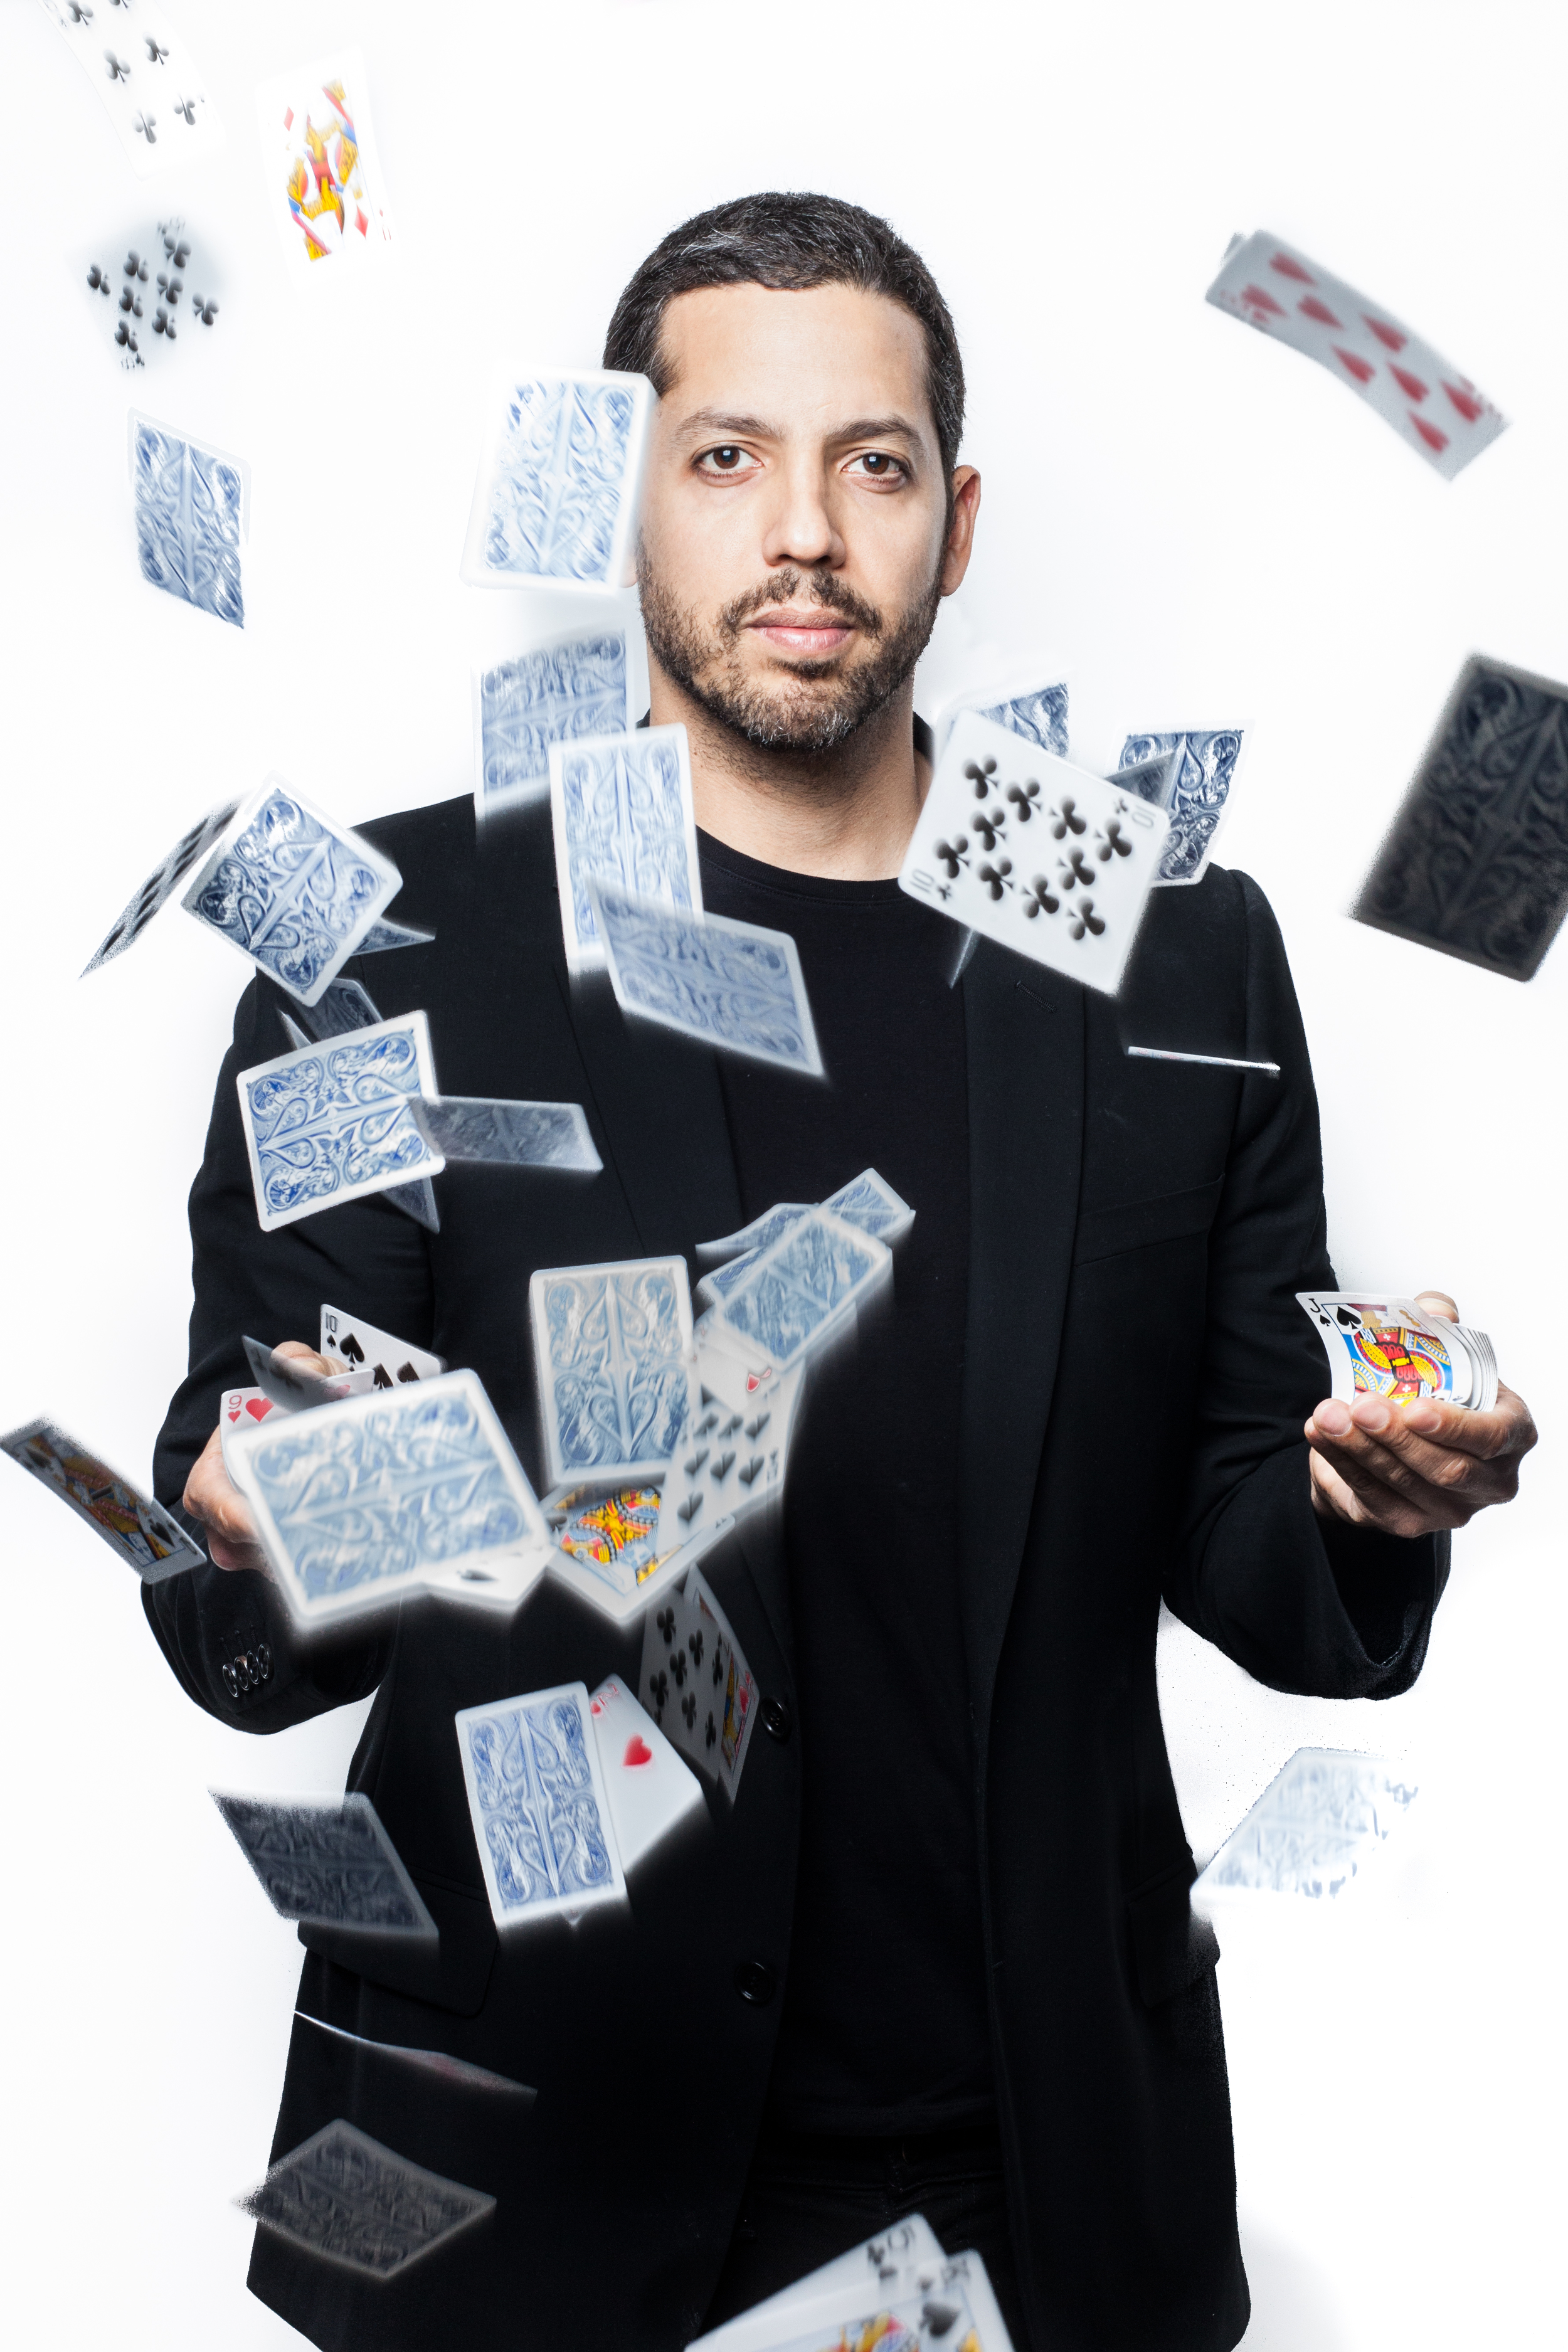 david blaine ©Andreas Poupoutsis Photography (1 of 1).jpg